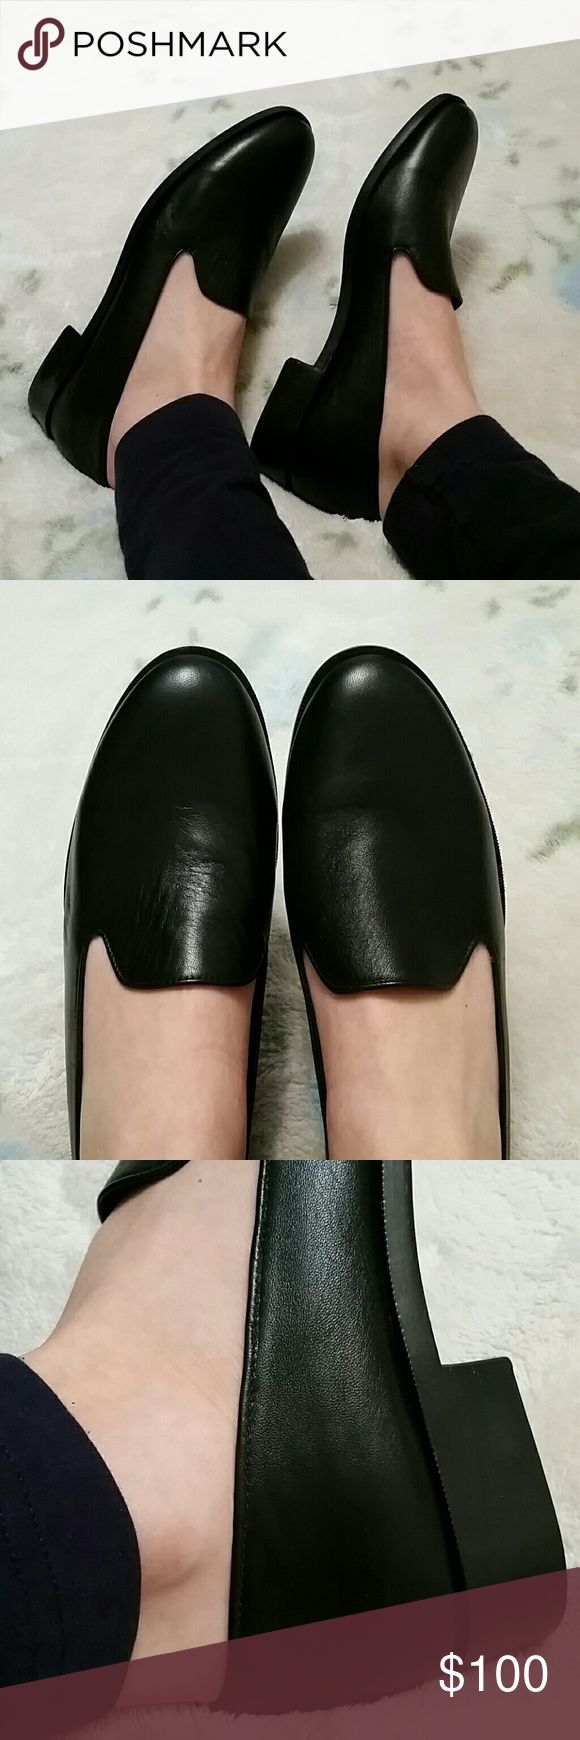 Black Leather Loafer NEW! Black Leather closed toe Loafer / soft luxurious leather, flexible rubber sole, leather lining / Made in USA! / perfect for office wear or running errands. . Looks like something Barney's would sell! *no trades brand name is NYLA premium NYLA premium Shoes Flats & Loafers